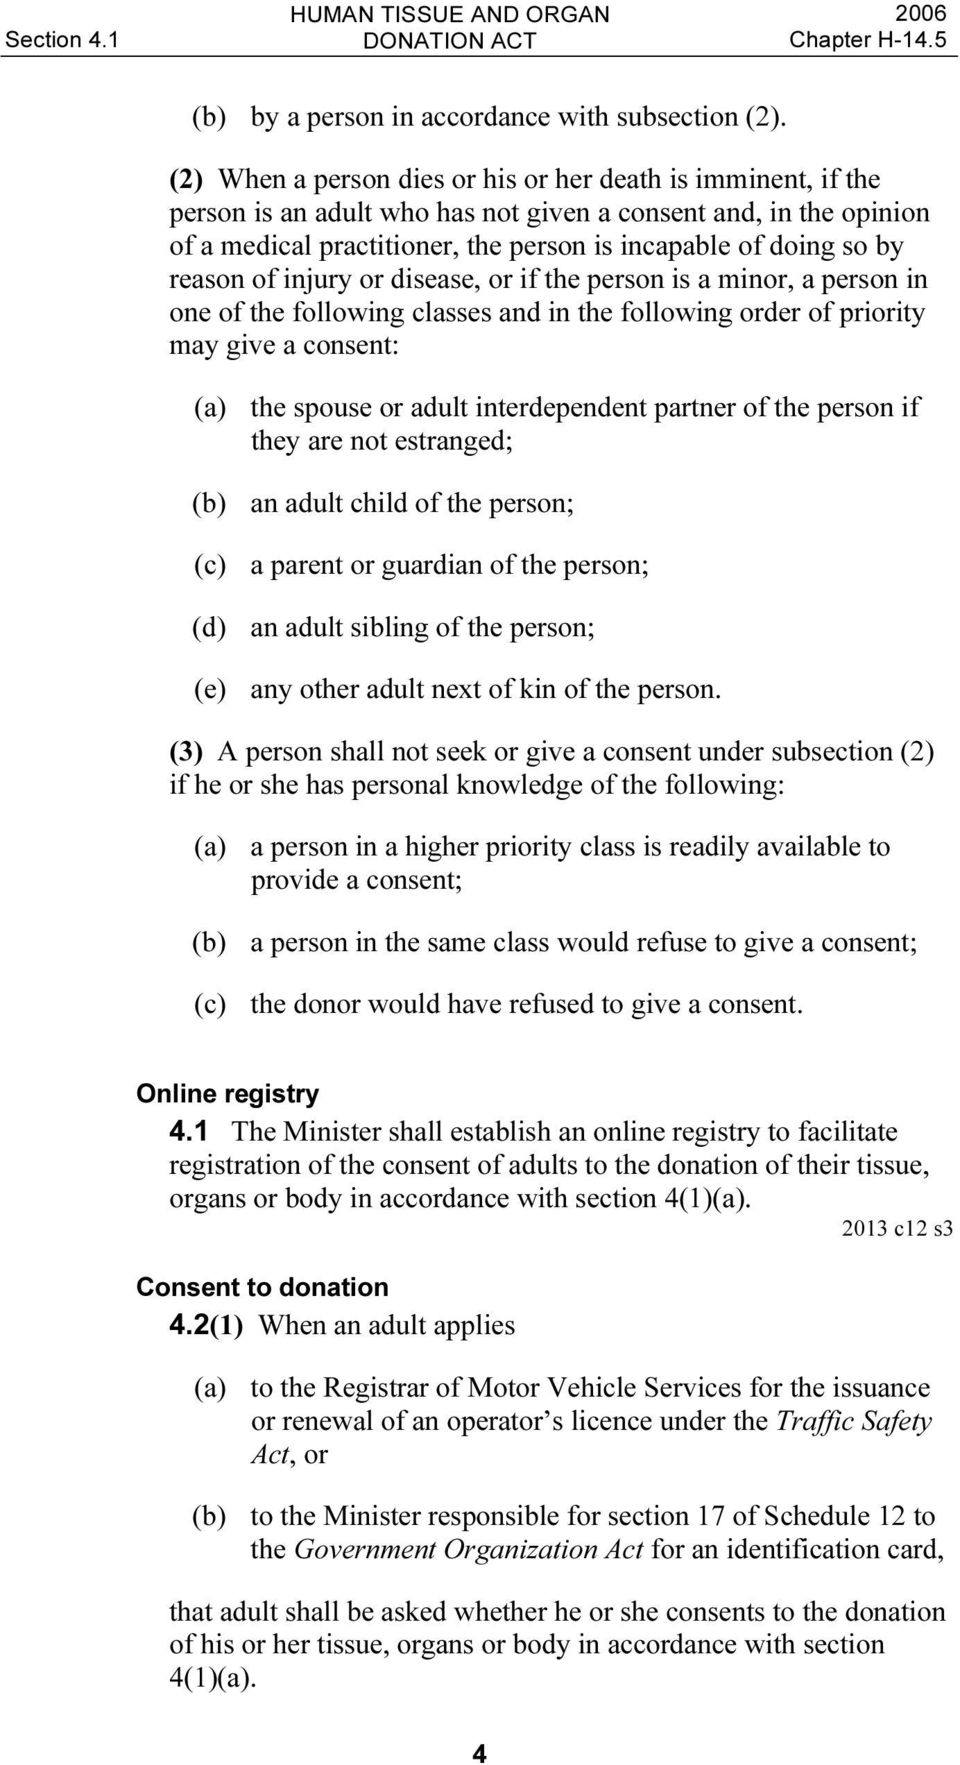 reason of injury or disease, or if the person is a minor, a person in one of the following classes and in the following order of priority may give a consent: (a) the spouse or adult interdependent